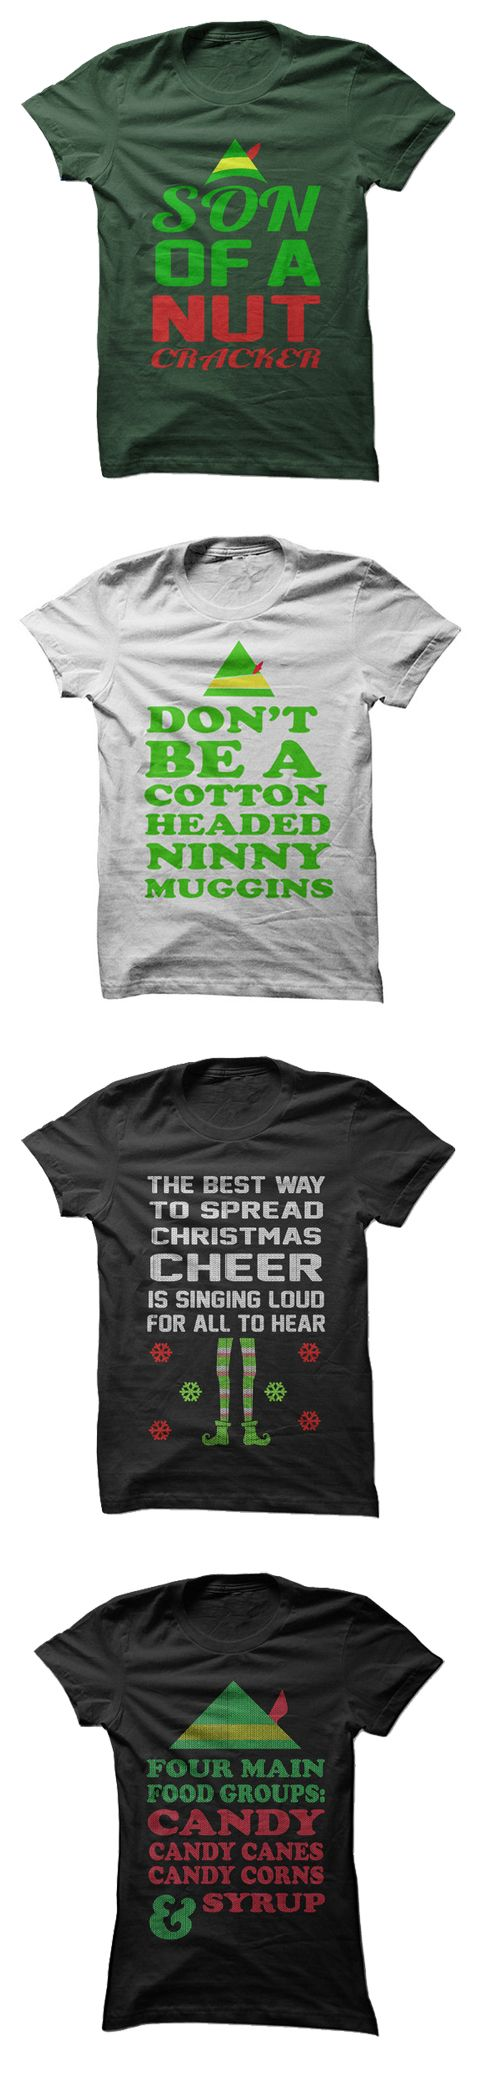 We have dozens of awesome Christmas shirts. Lots of colors and sizes available. Get it in a unisex shirt, womens shirt or hoodie. Check out our collection now! FREE Shipping is available as always!